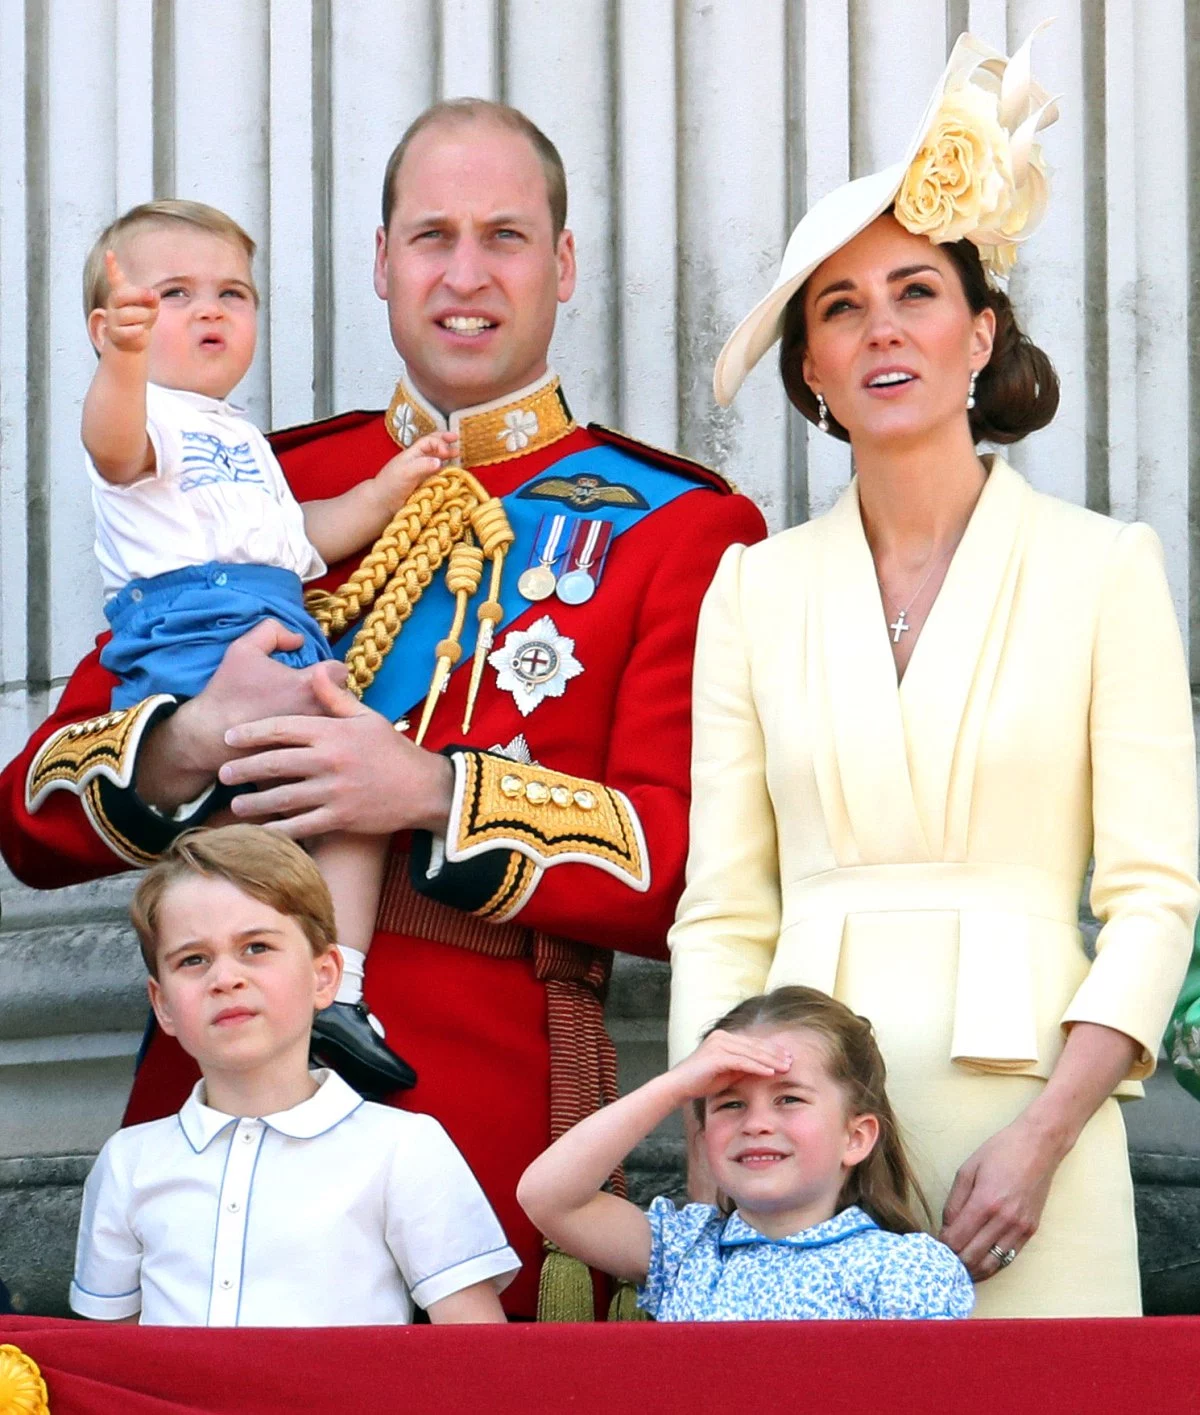 Prince Louis Makes Trooping the Colour Parade Debut: Photos